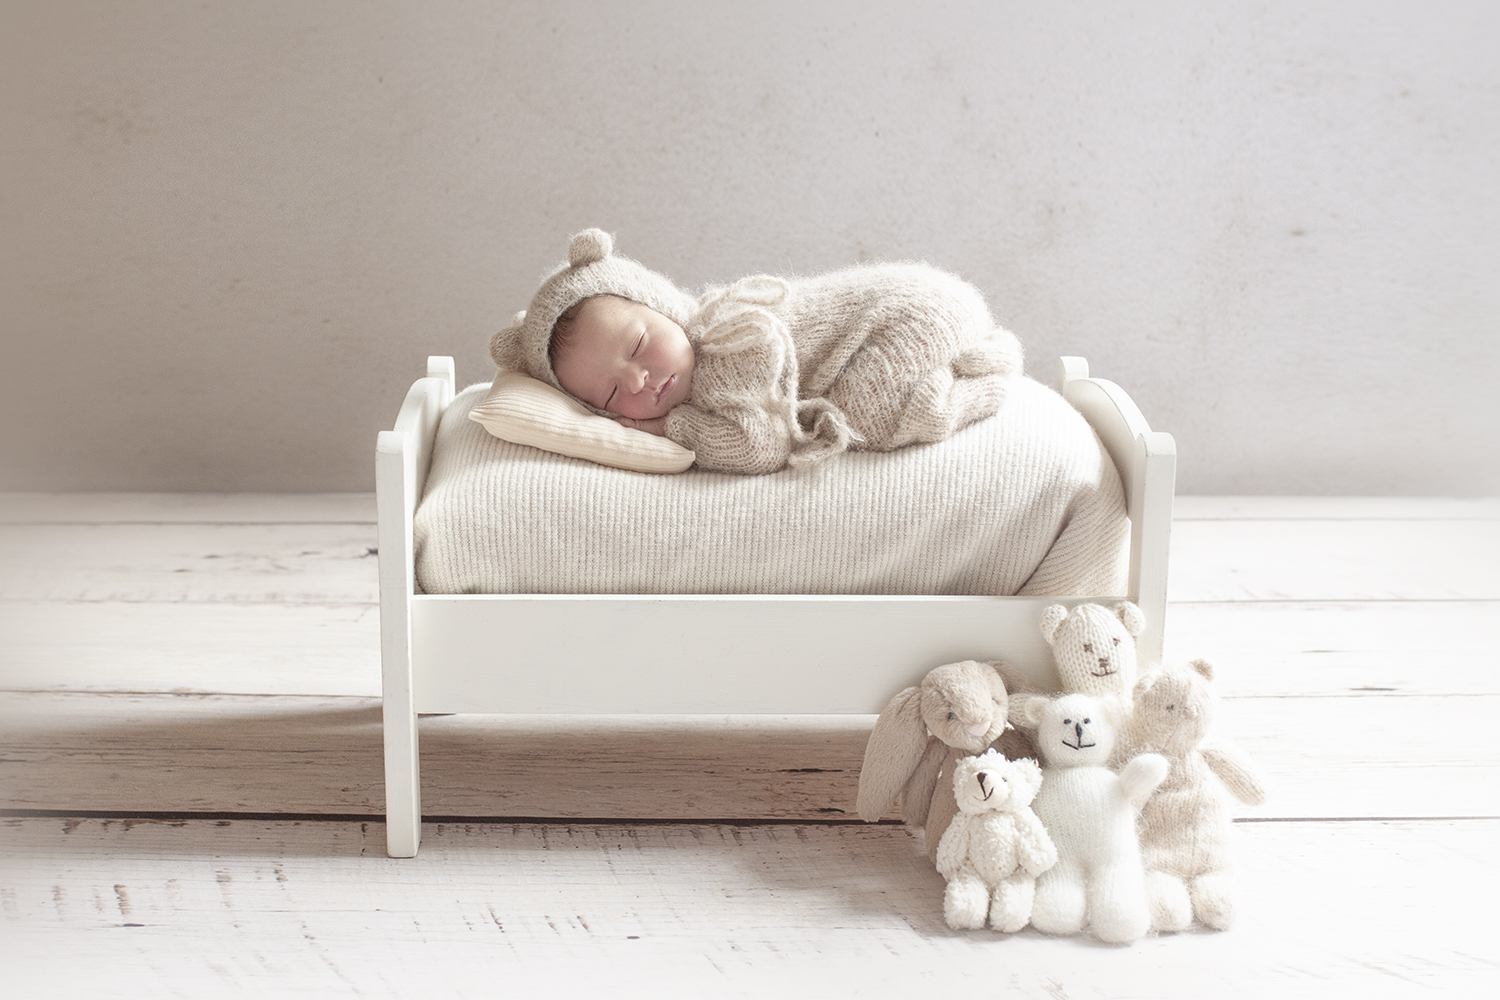 Newborn baby boy sleeping on white wooden bed wearing cream knit romper and bear beanie with bunch of teddy bears on white wooden floor